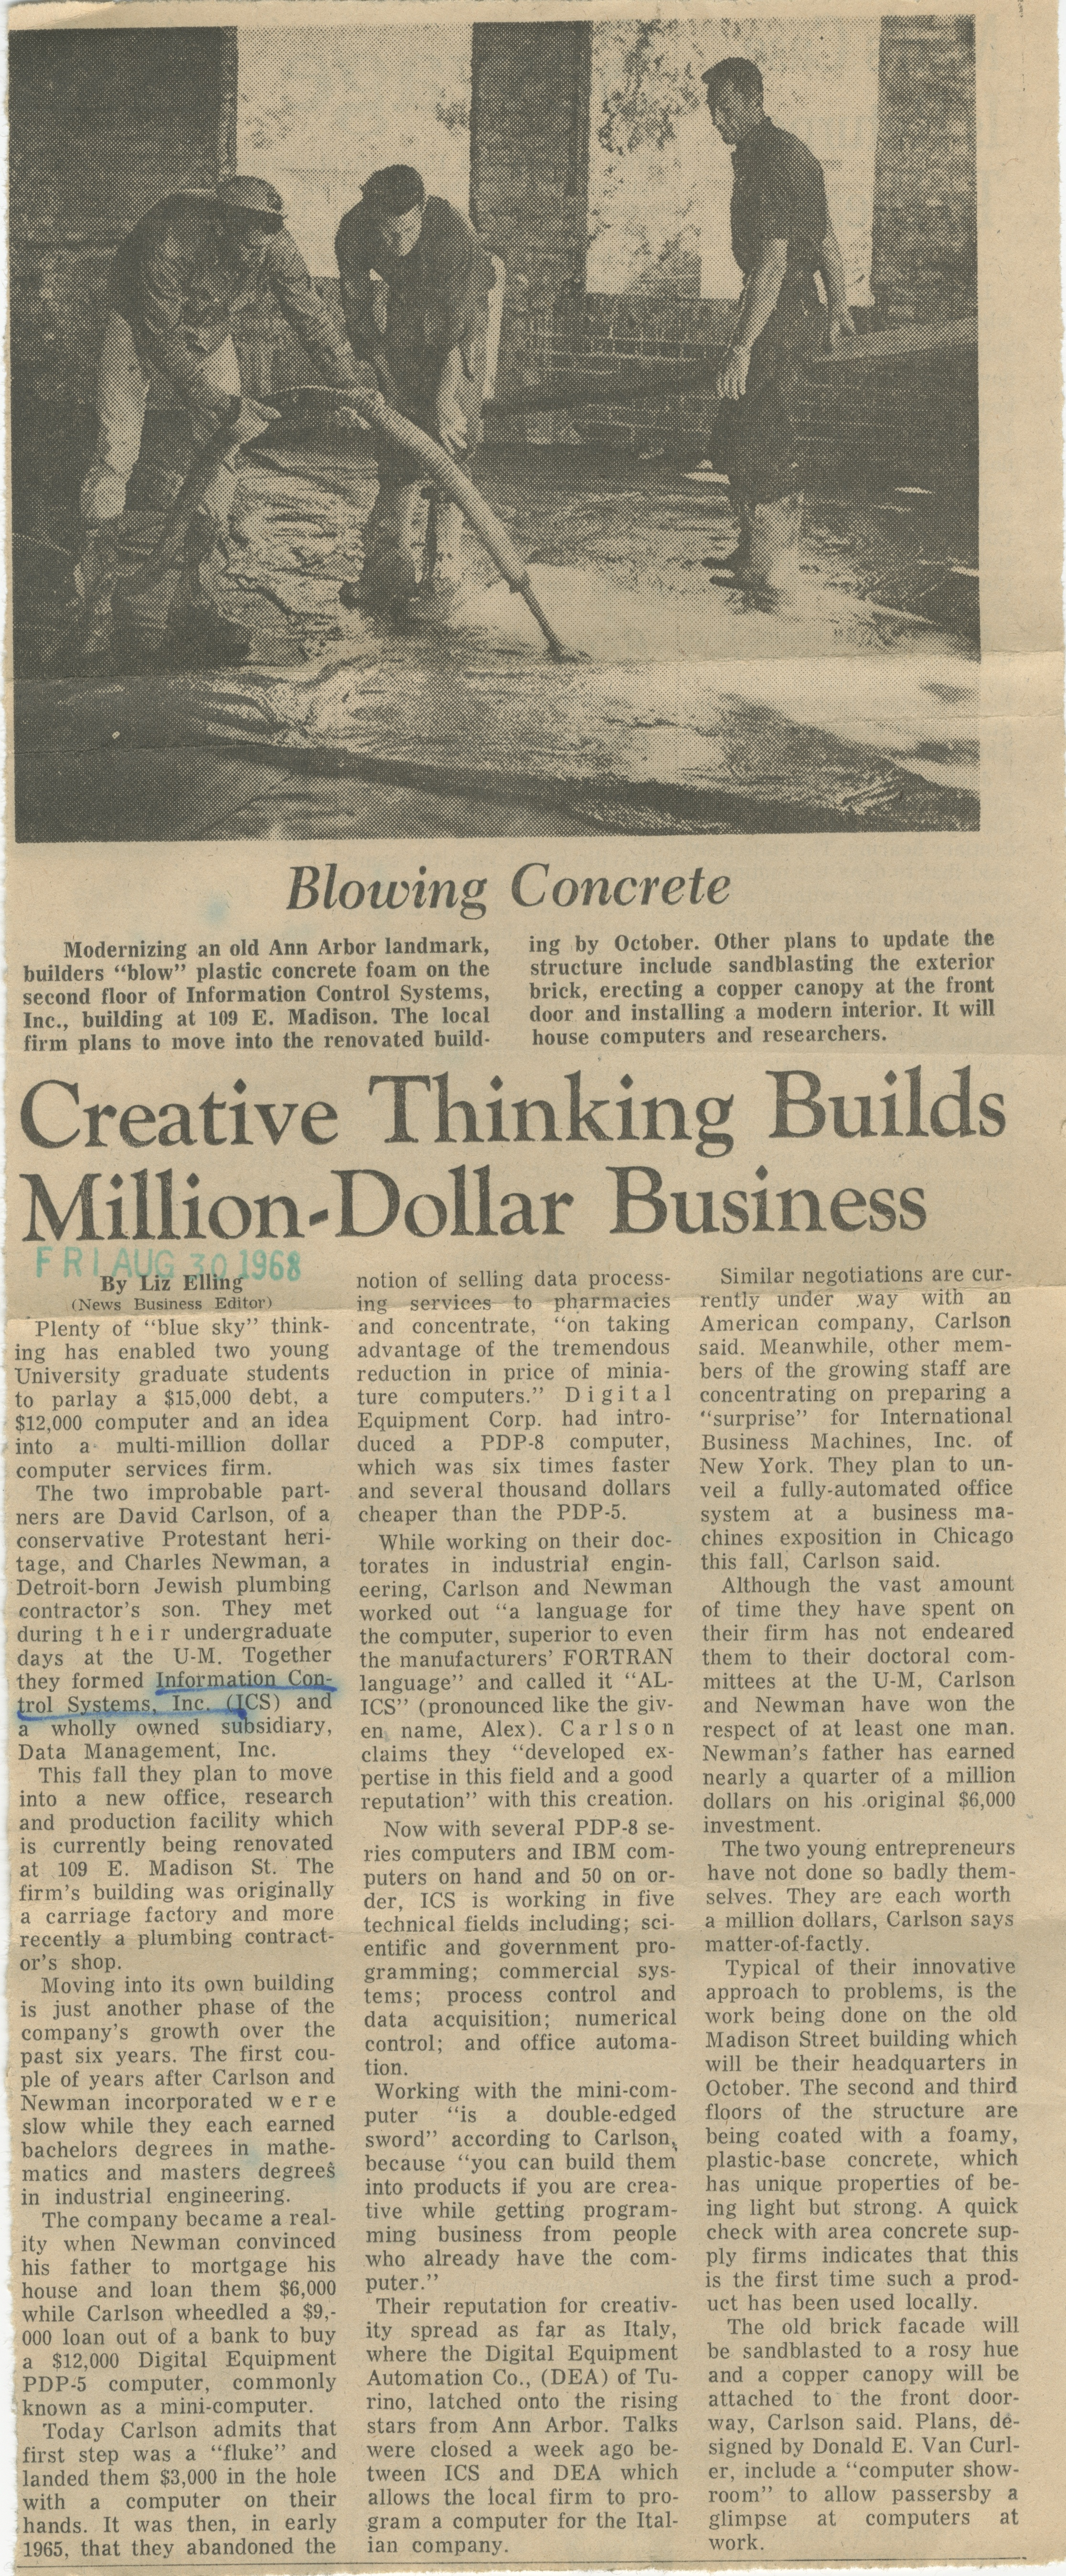 Creative Thinking Builds Million-Dollar Business image